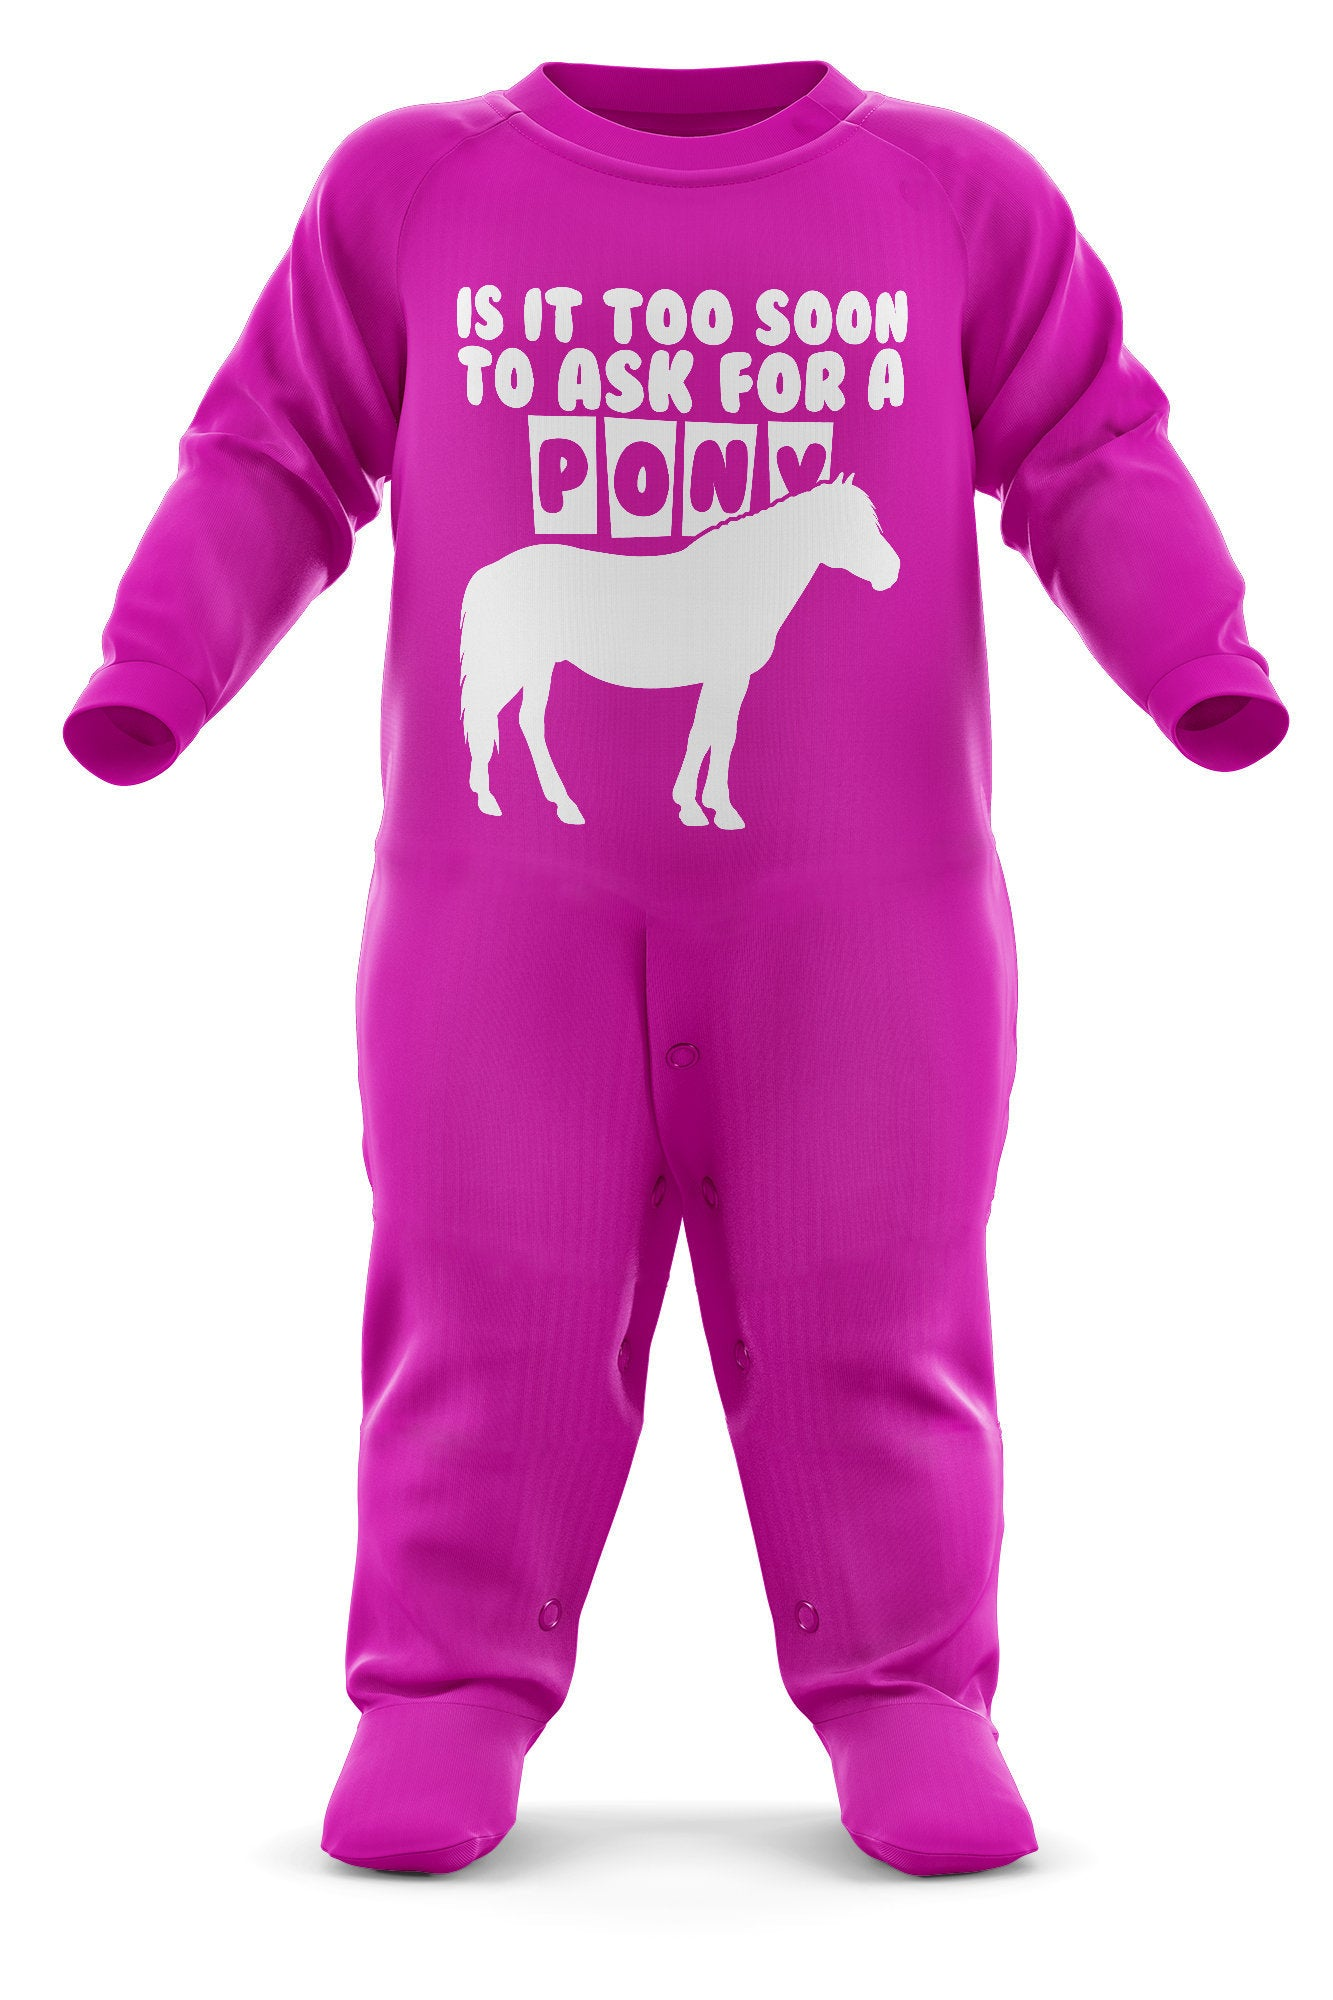 Is It Too Soon To Ask For A Pony Funny Personalised Baby Vest Bodysuit BabyGrows